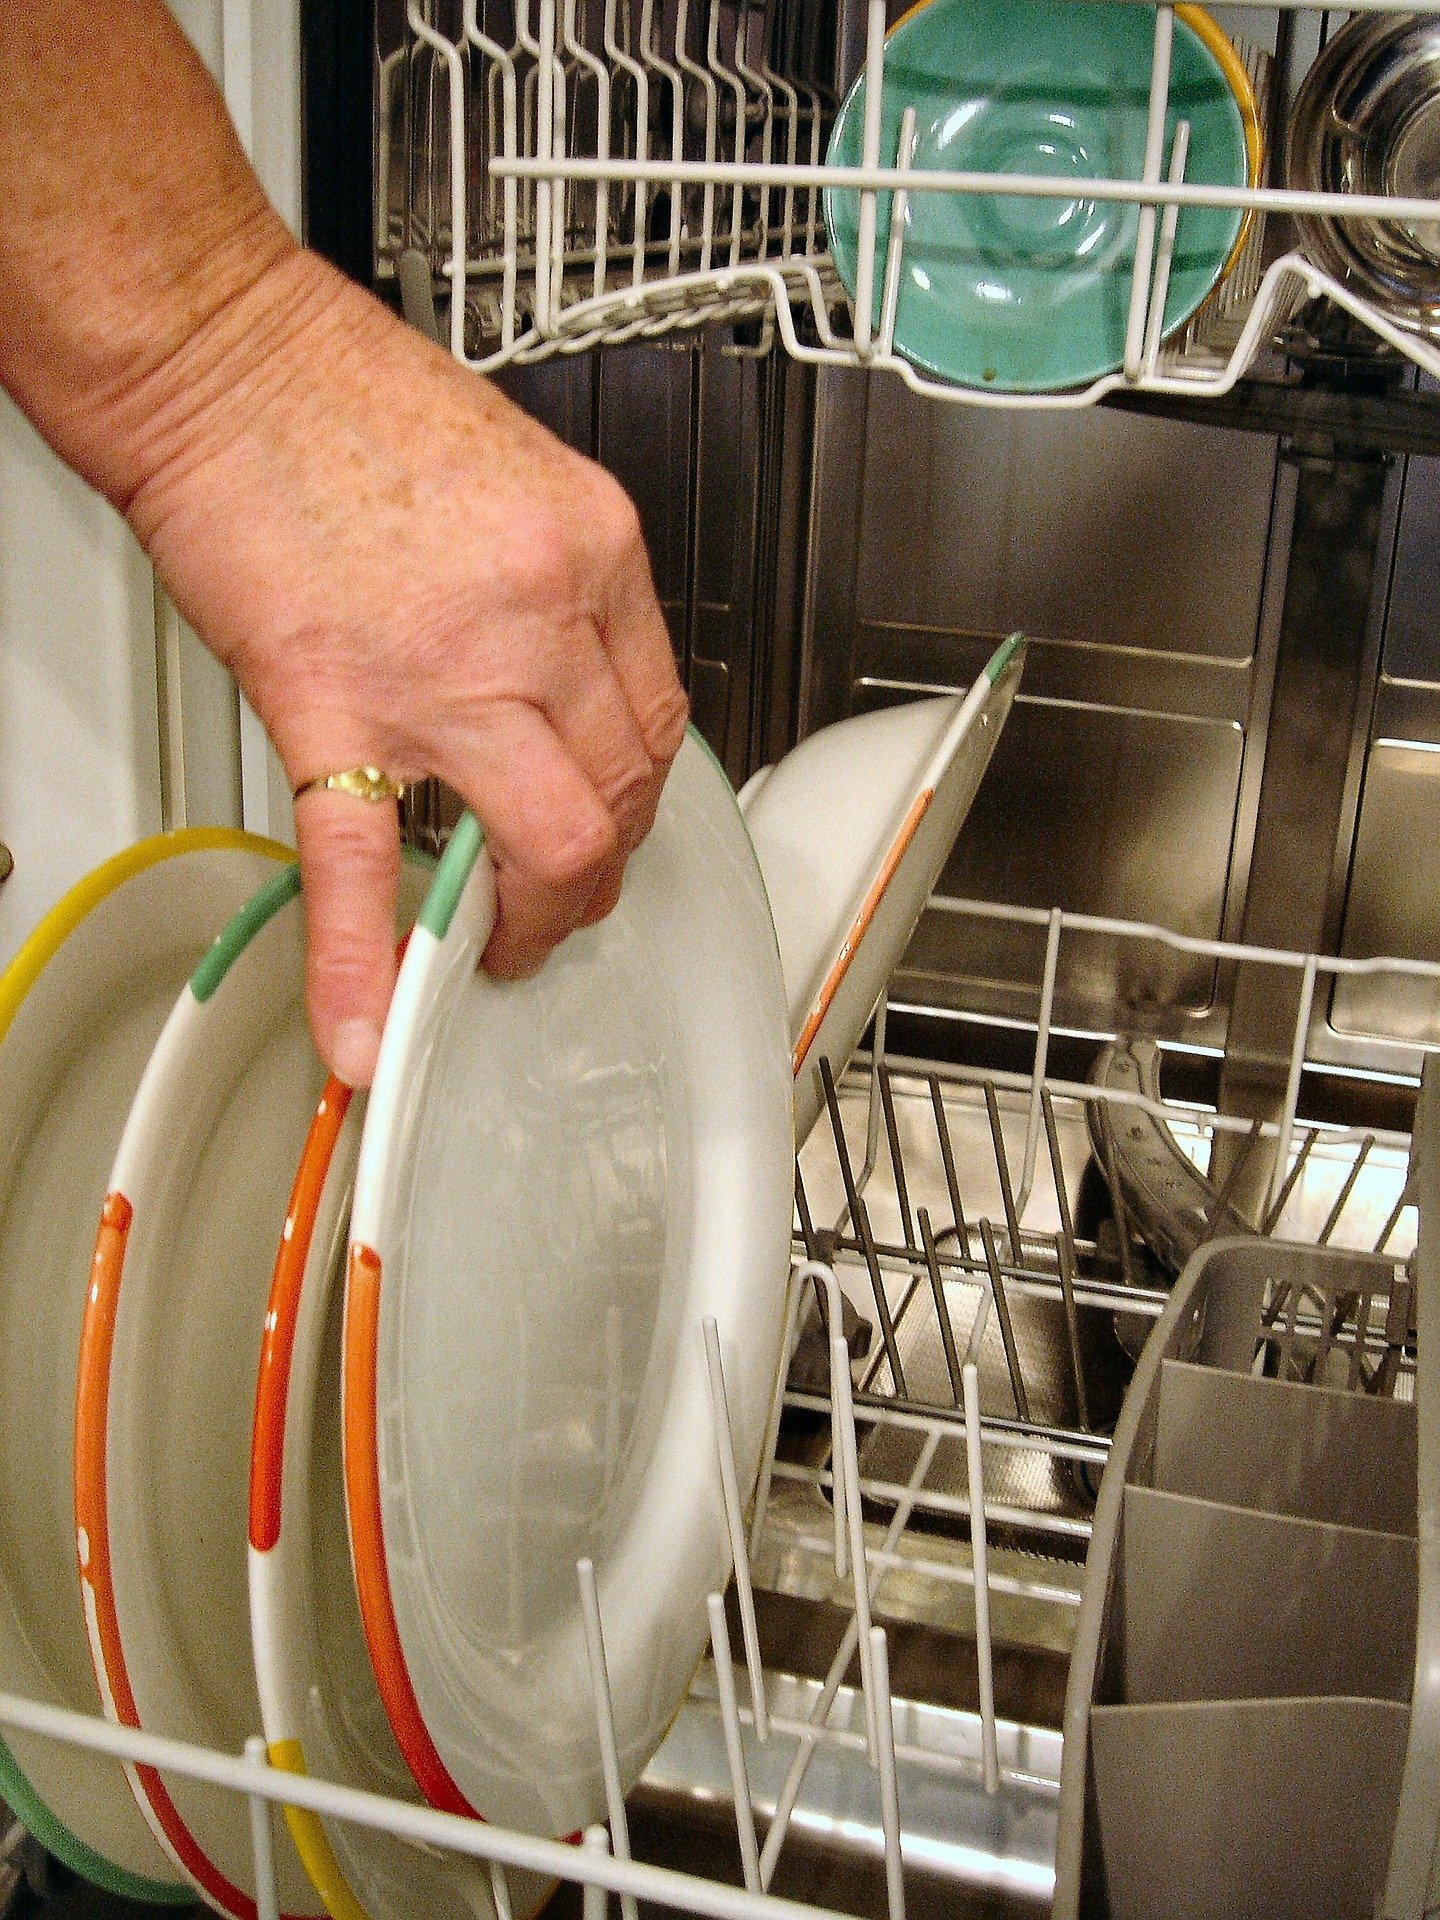 Dishwasher with Garbage Disposal